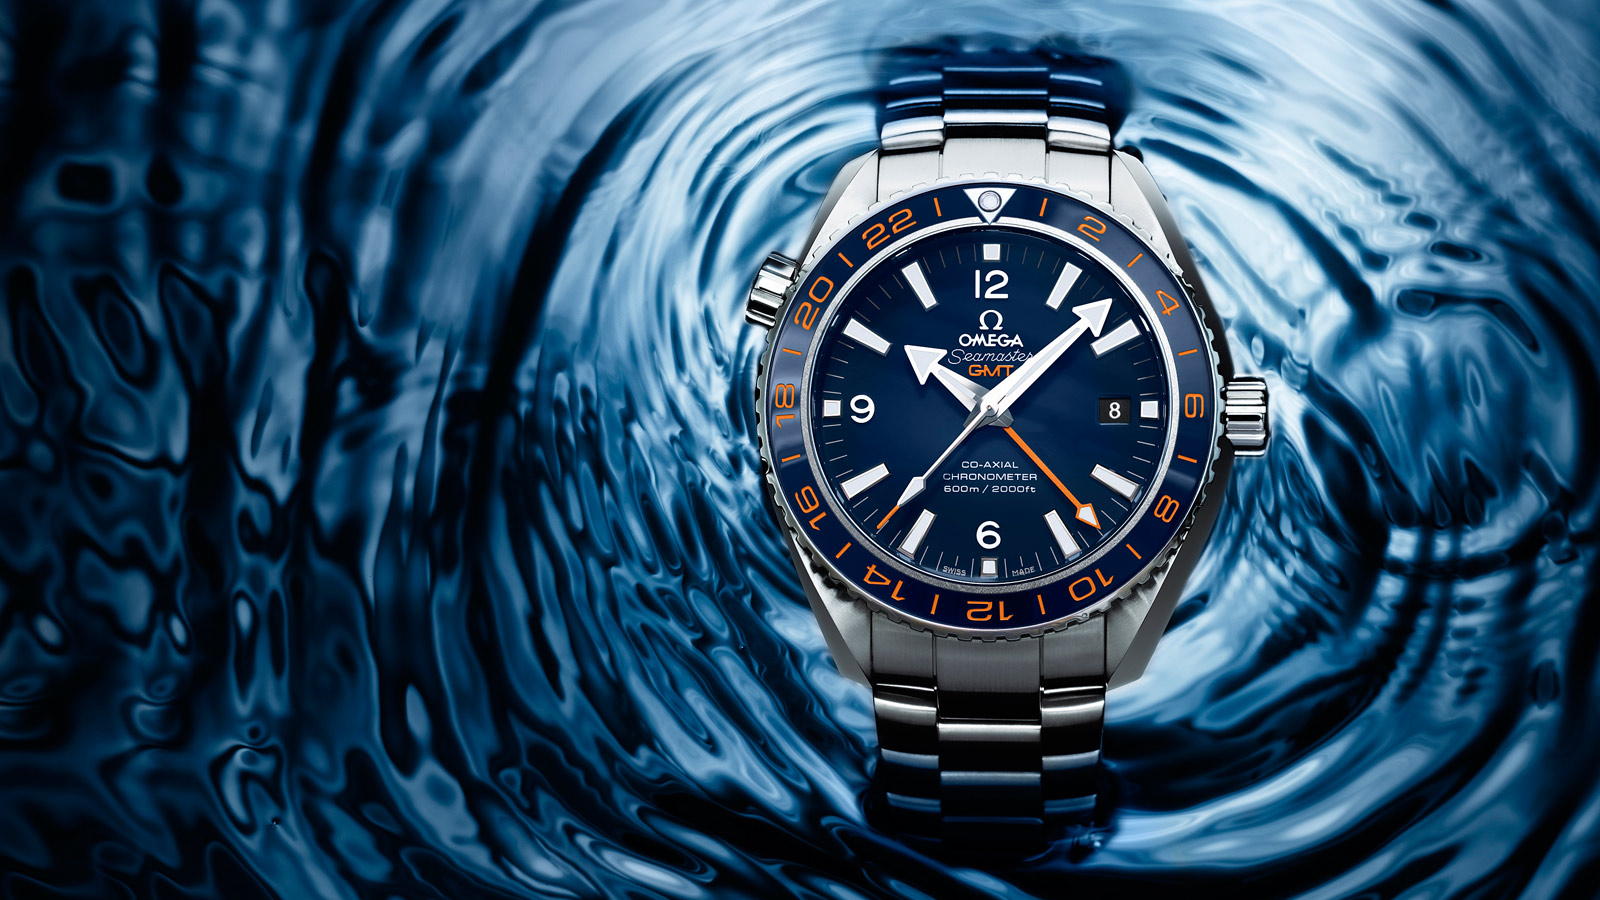 Seamaster プラネットオーシャン Planet Ocean 600M Omega Co‑axial GMT 43.5 mm - 232.30.44.22.03.001 - ビュー 3